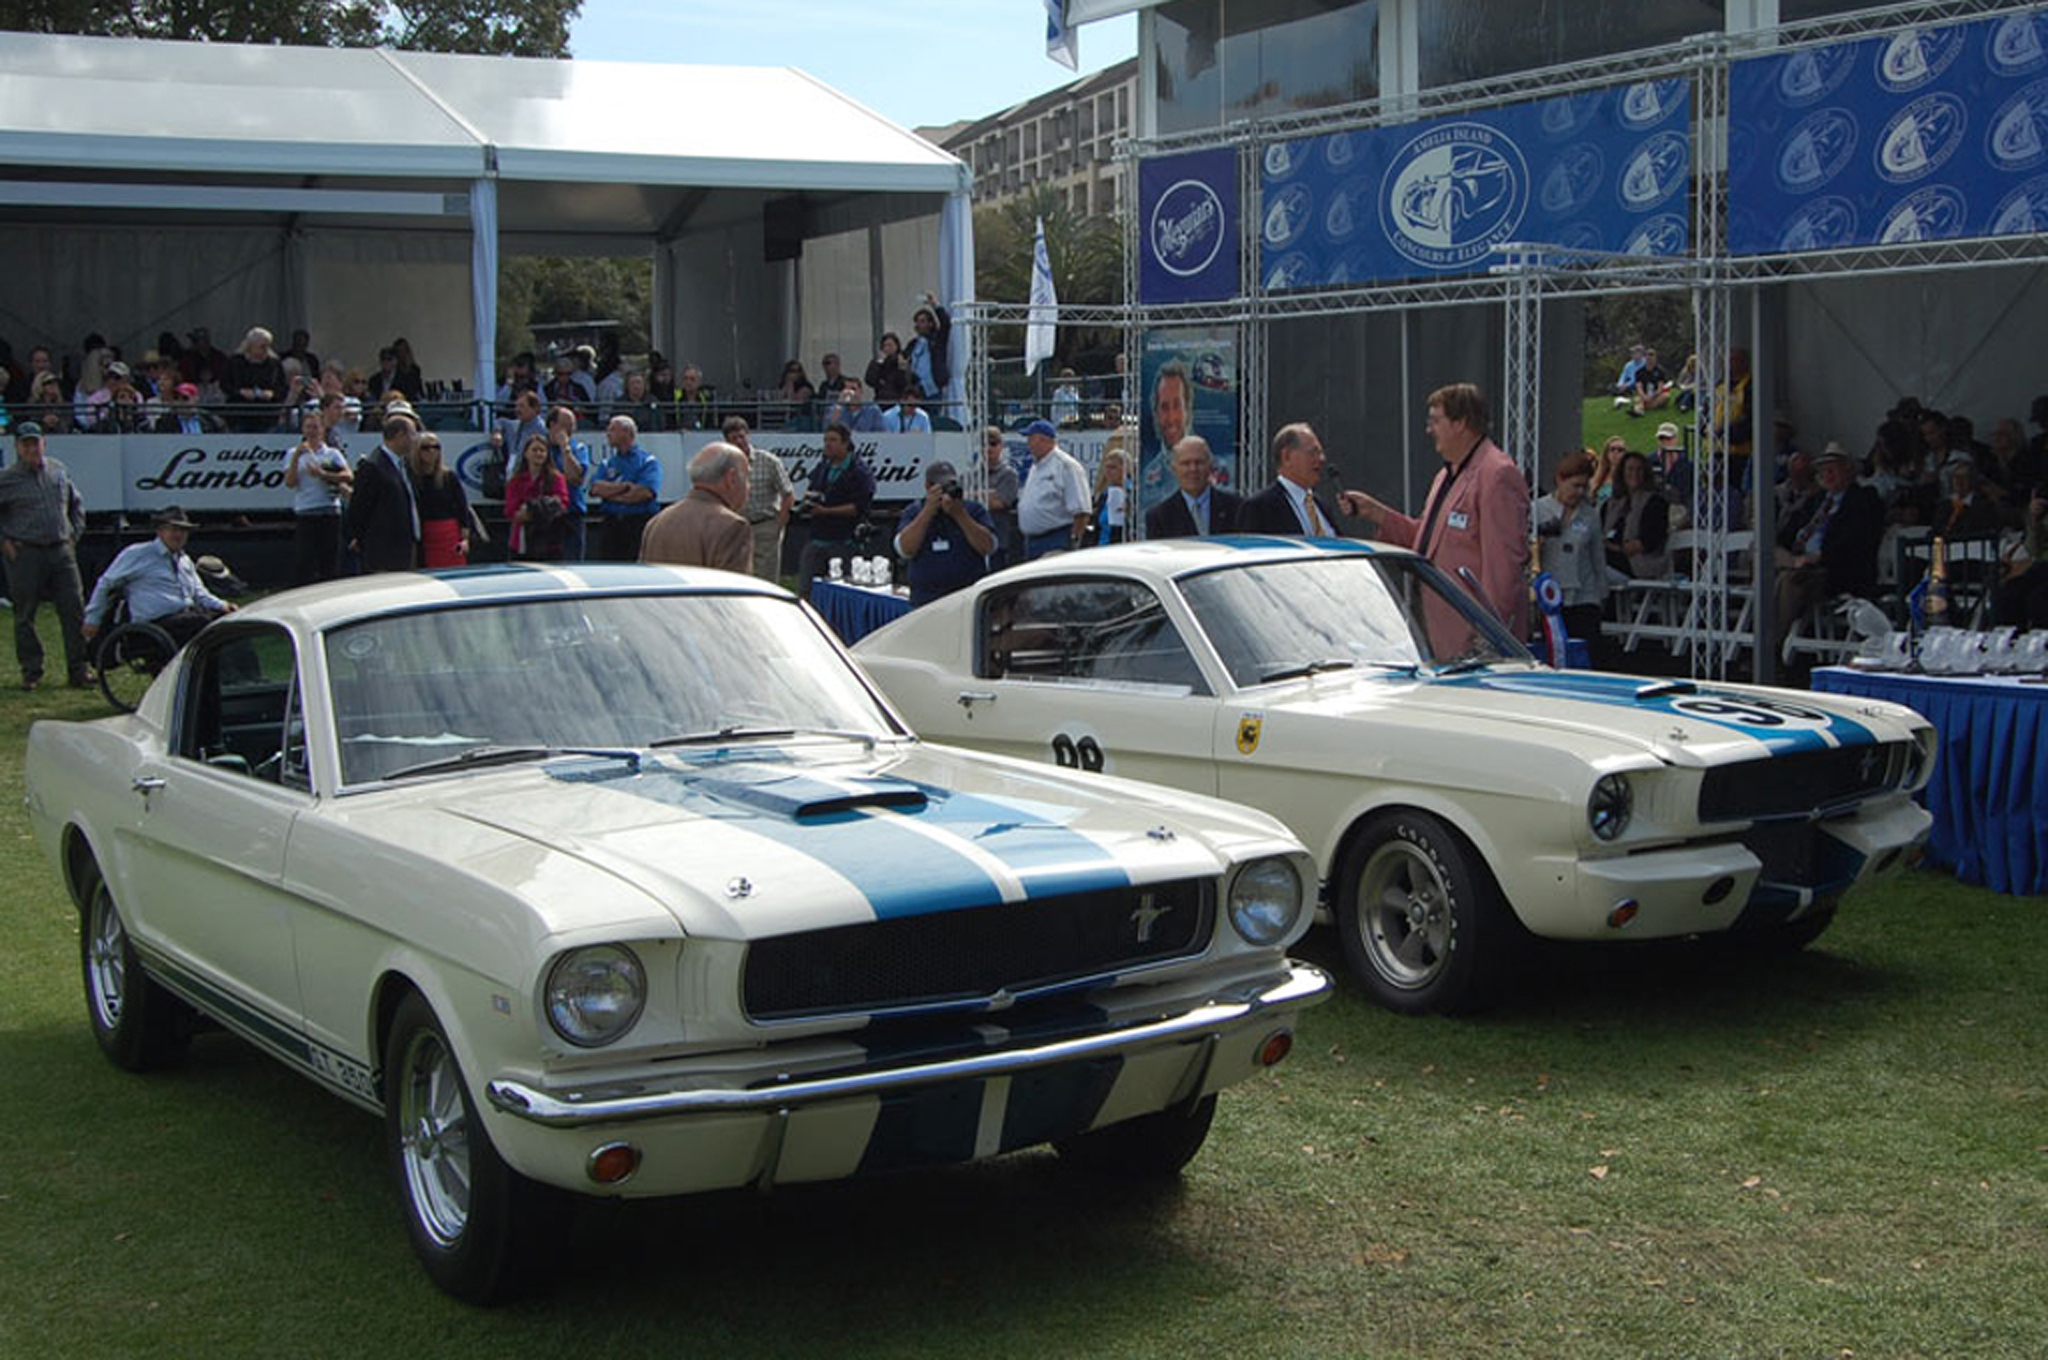 The tale of the original 1965 ford mustang shelby gt350 prototypes